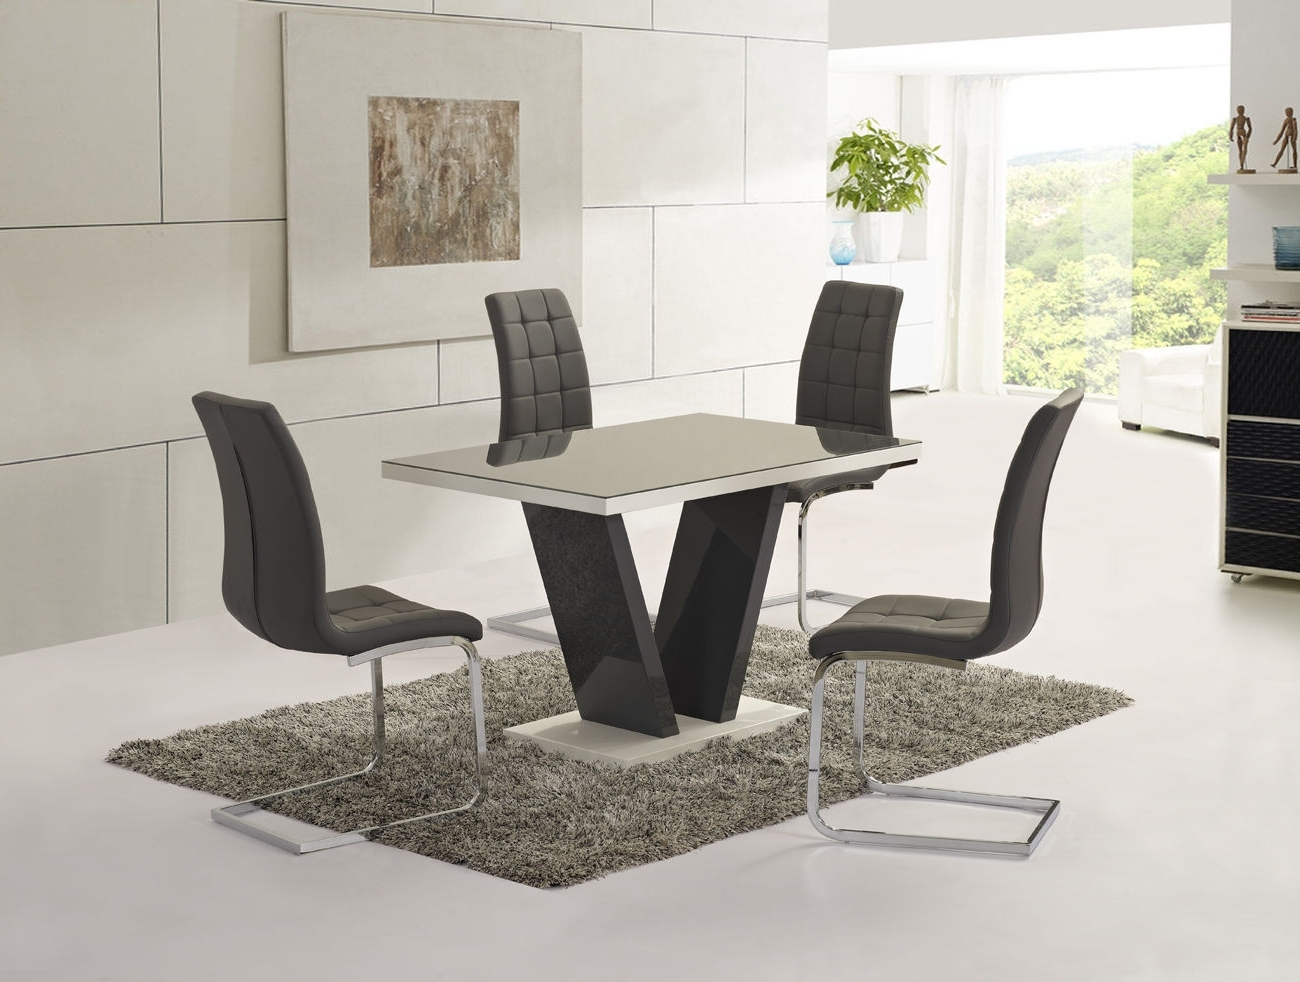 White Gloss Dining Tables And 6 Chairs Regarding Most Up To Date Ga Vico Gloss Grey Glass Top Designer 160Cm Dining Set – 4 6 Grey (View 23 of 25)